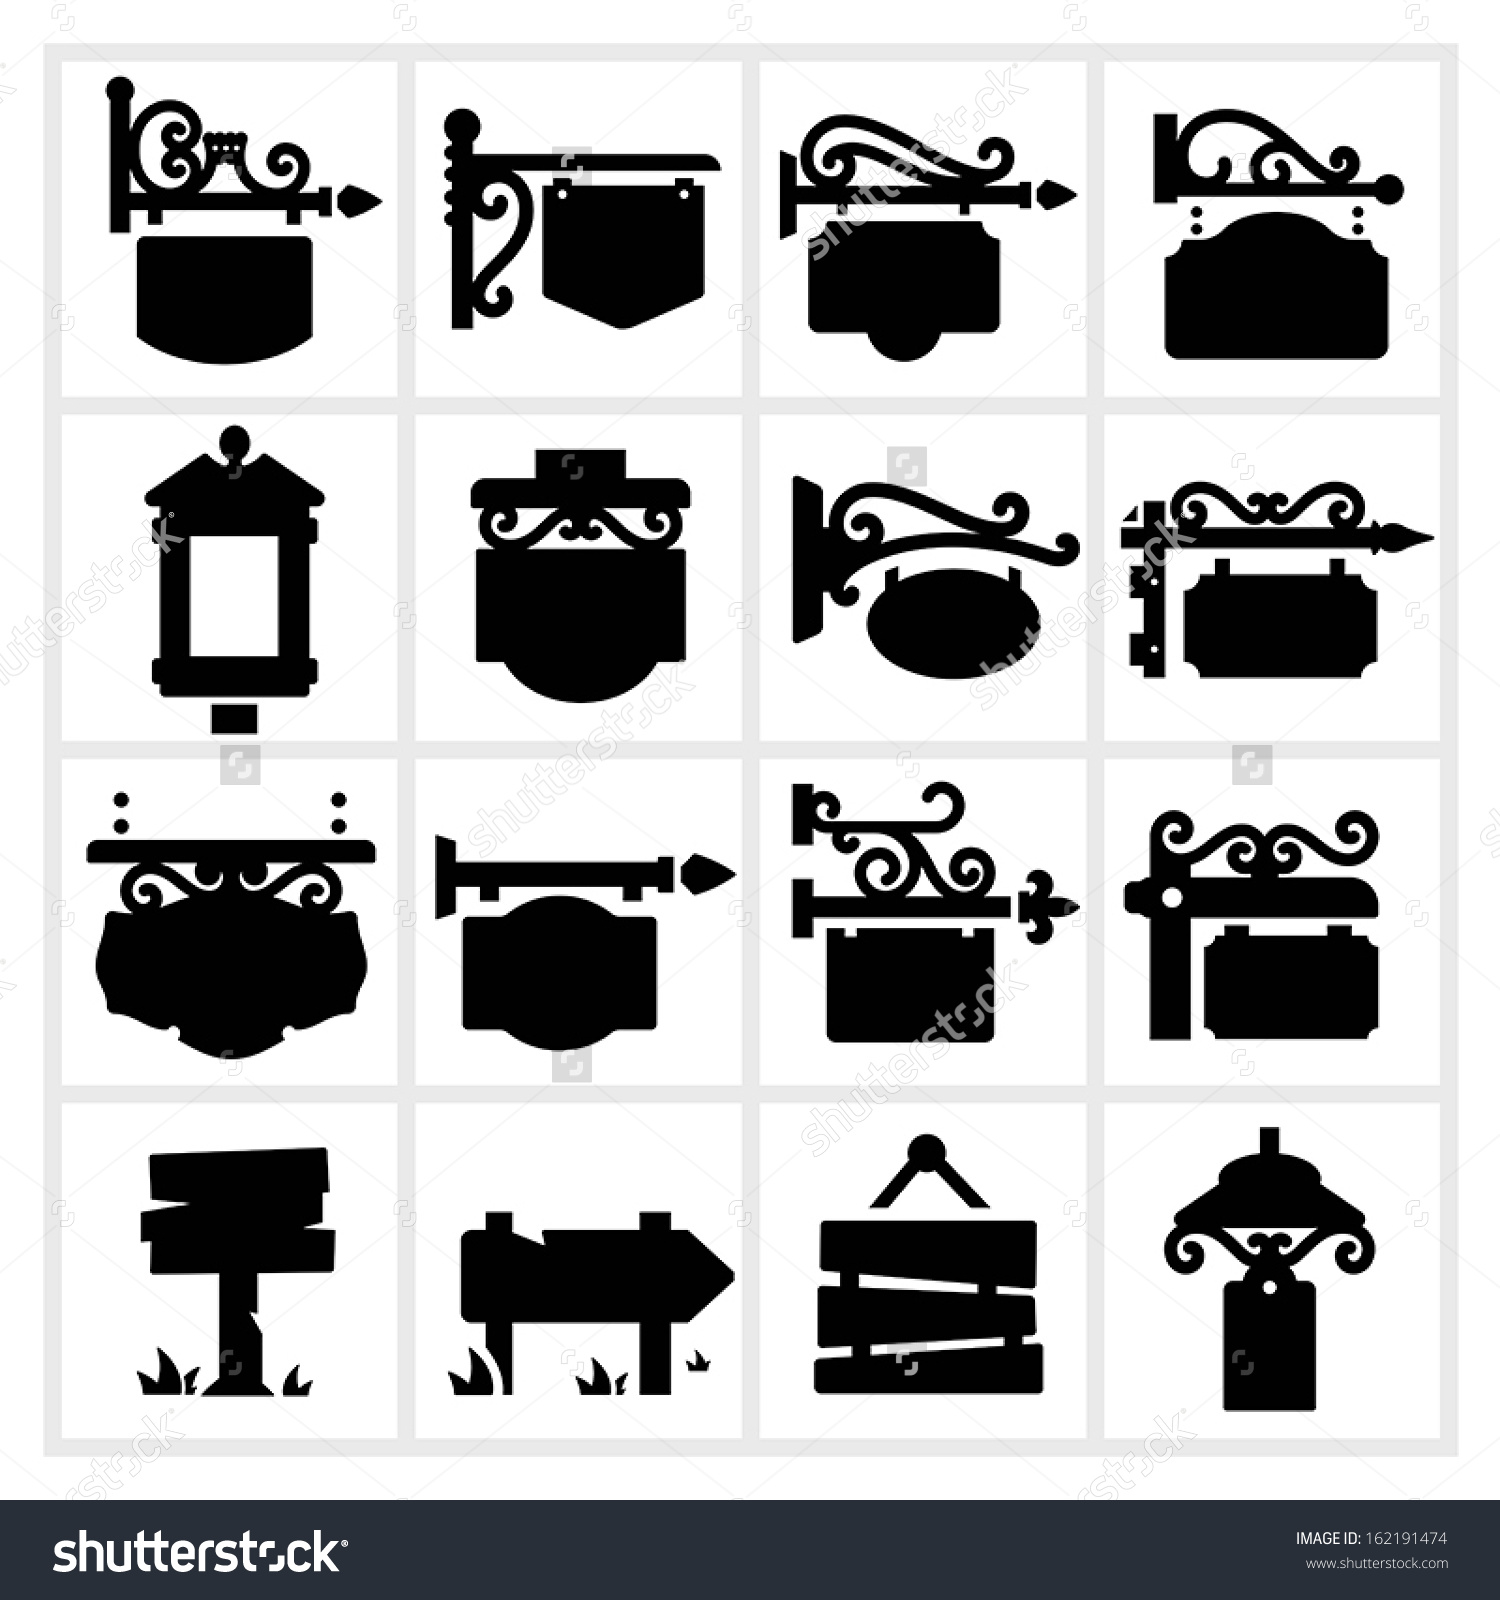 Hanging Sign Shop Store Signs Vintage Stock Vector 162191474.